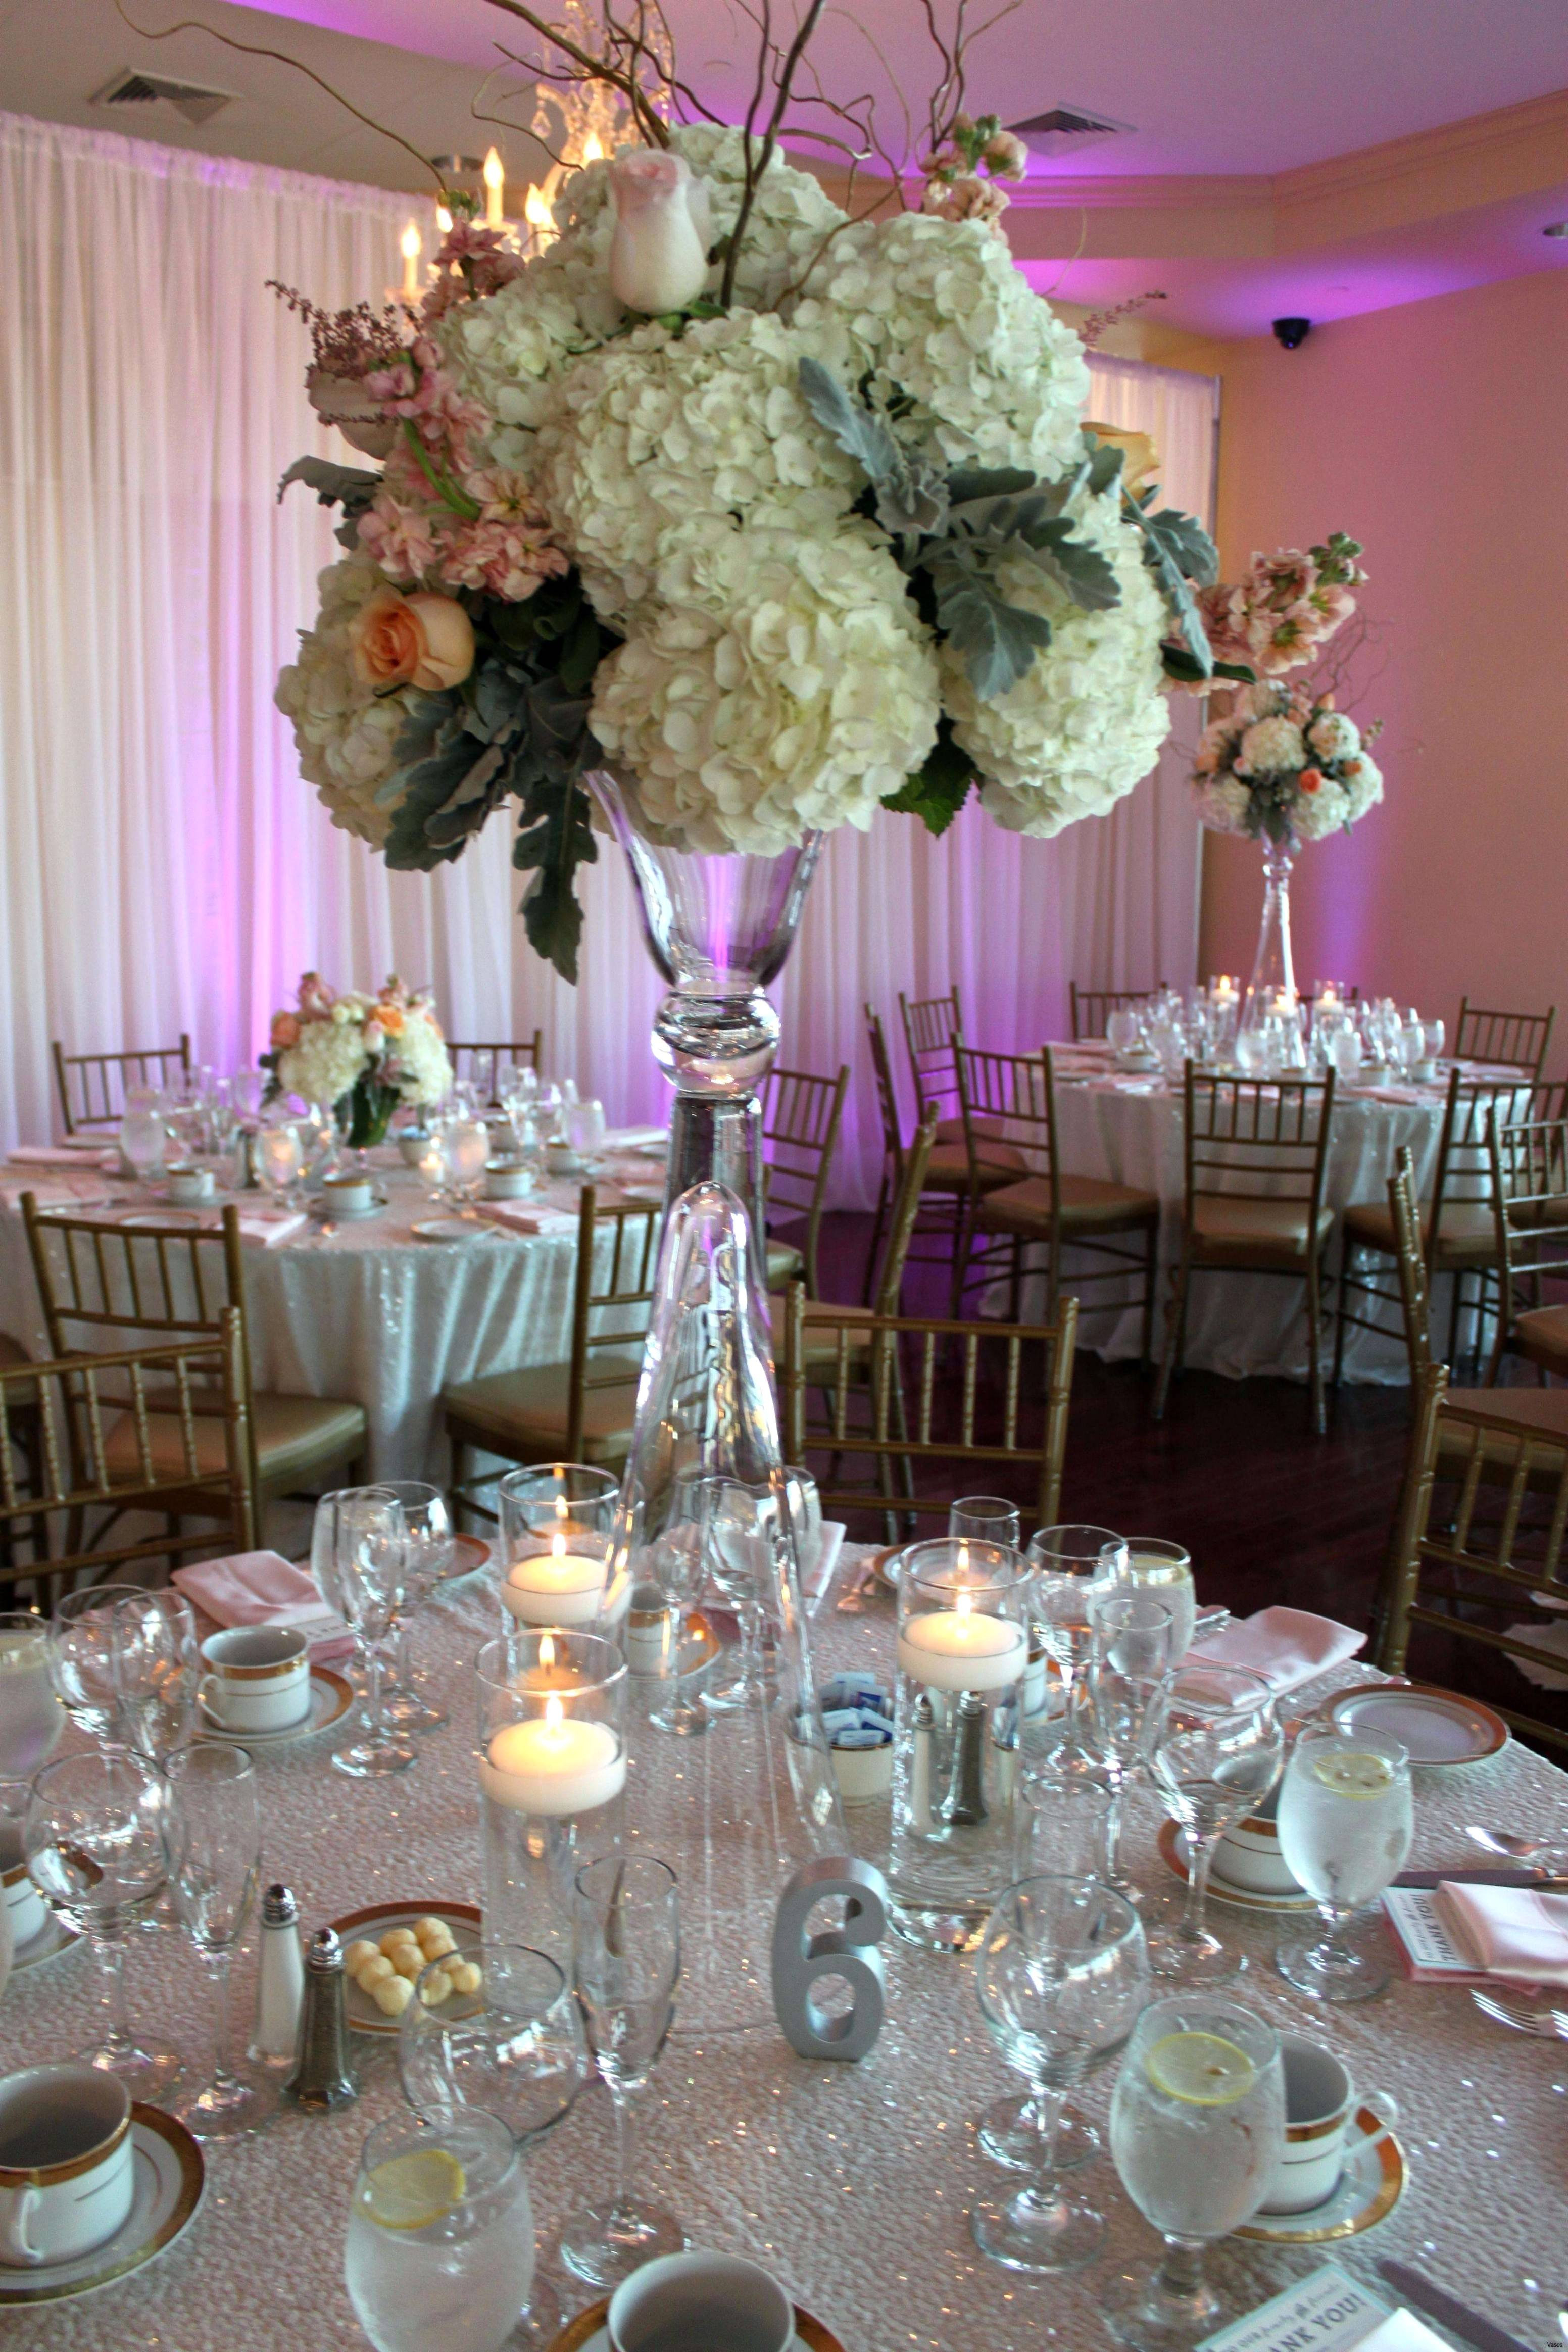 polka dot vase of lights under tables for weddings simple mirrored square vase 3h with regard to lights under tables for weddings simple mirrored square vase 3h vases mirror table decorationi 0d weddings